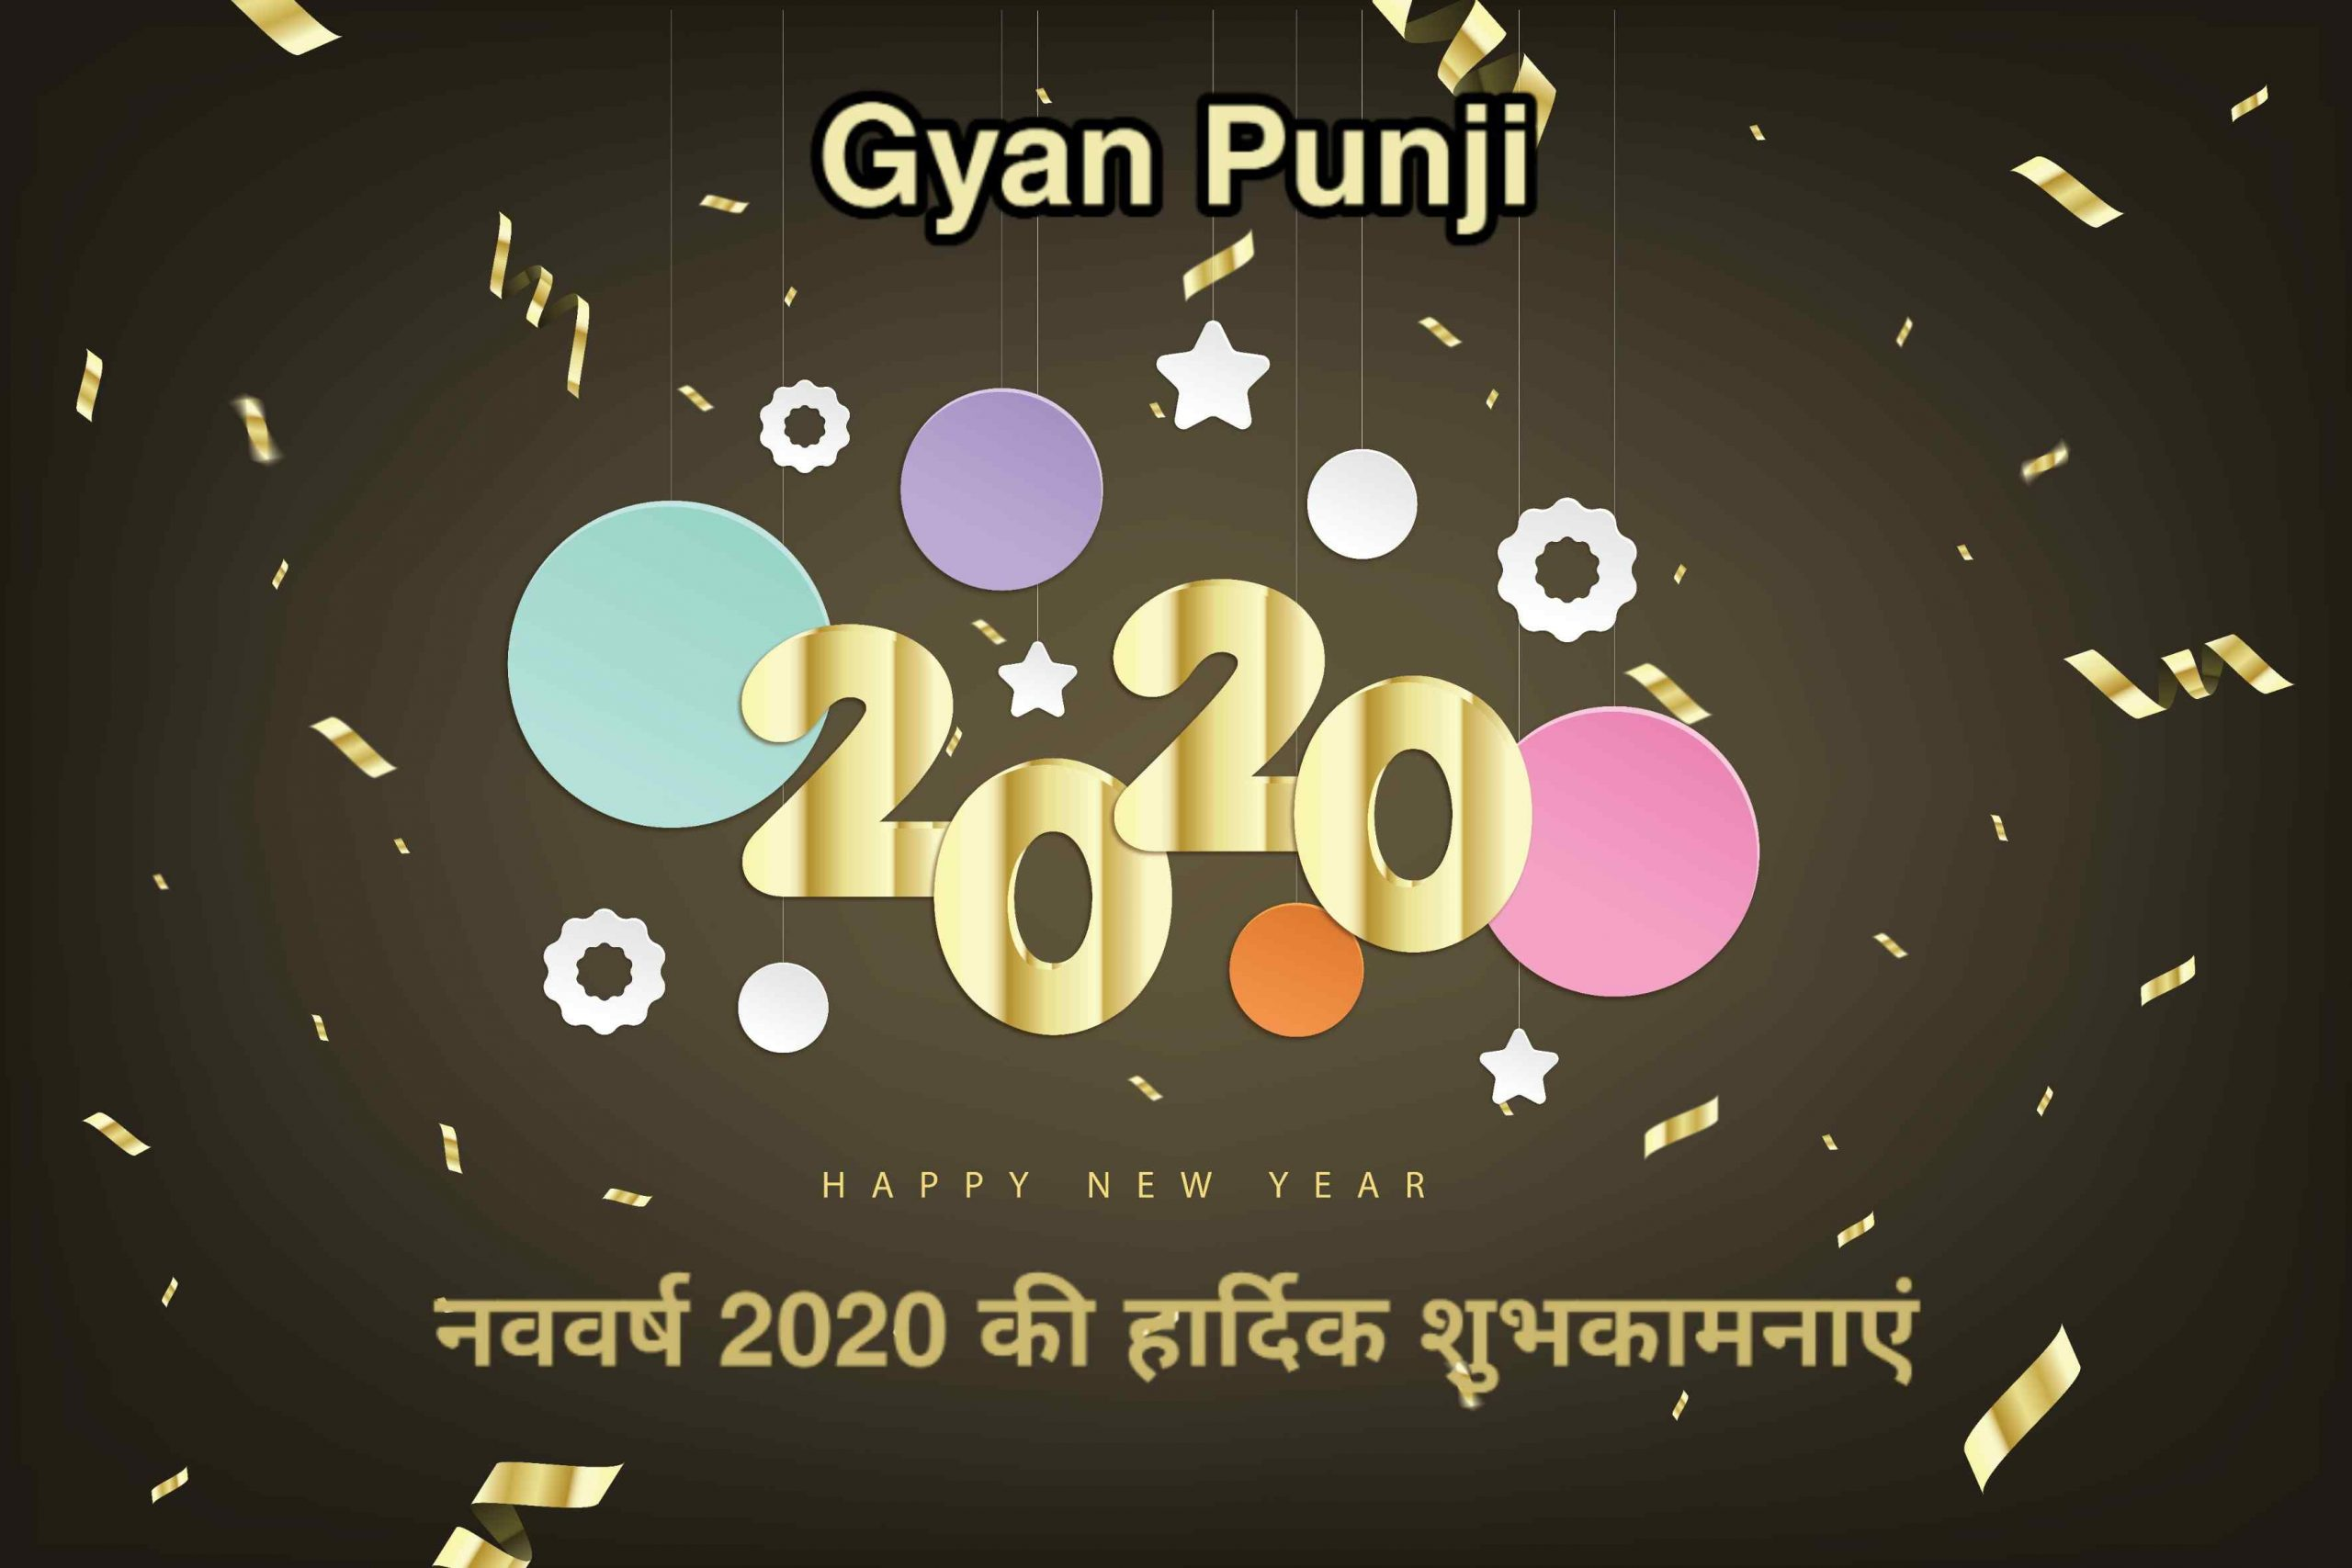 new year 2020 wishes in hindi